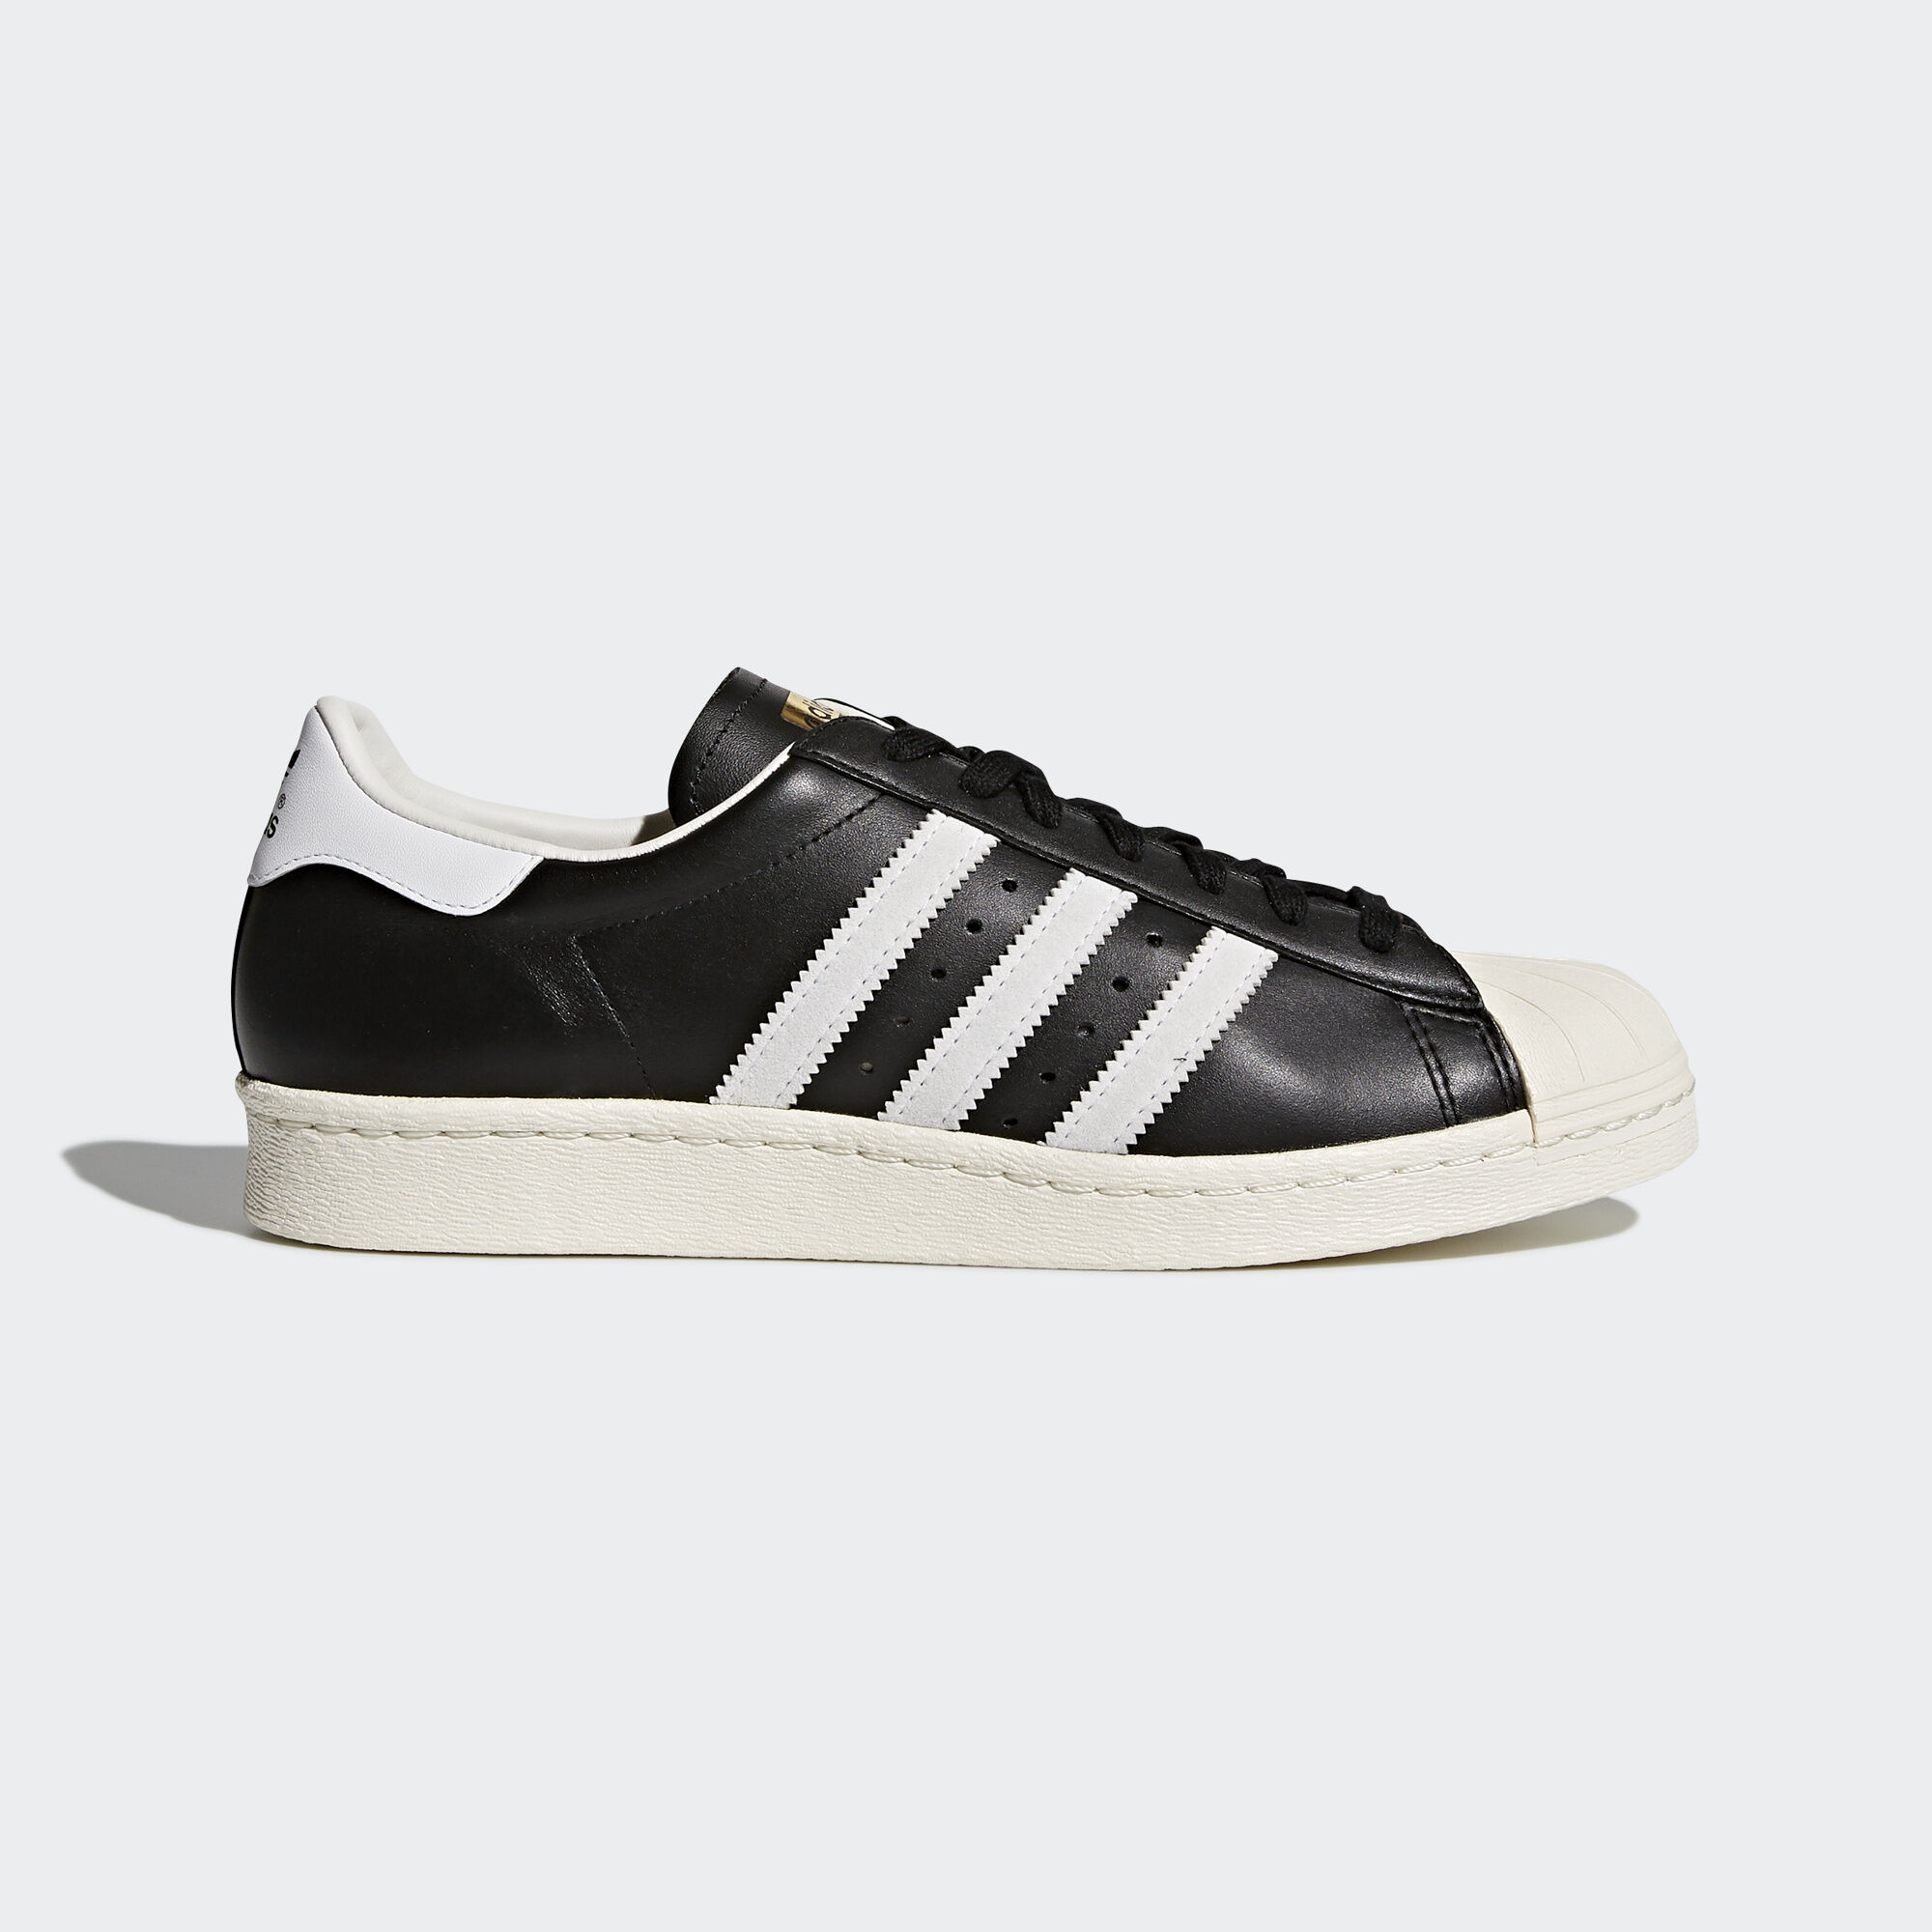 Superstar Adidas Punta Metallo